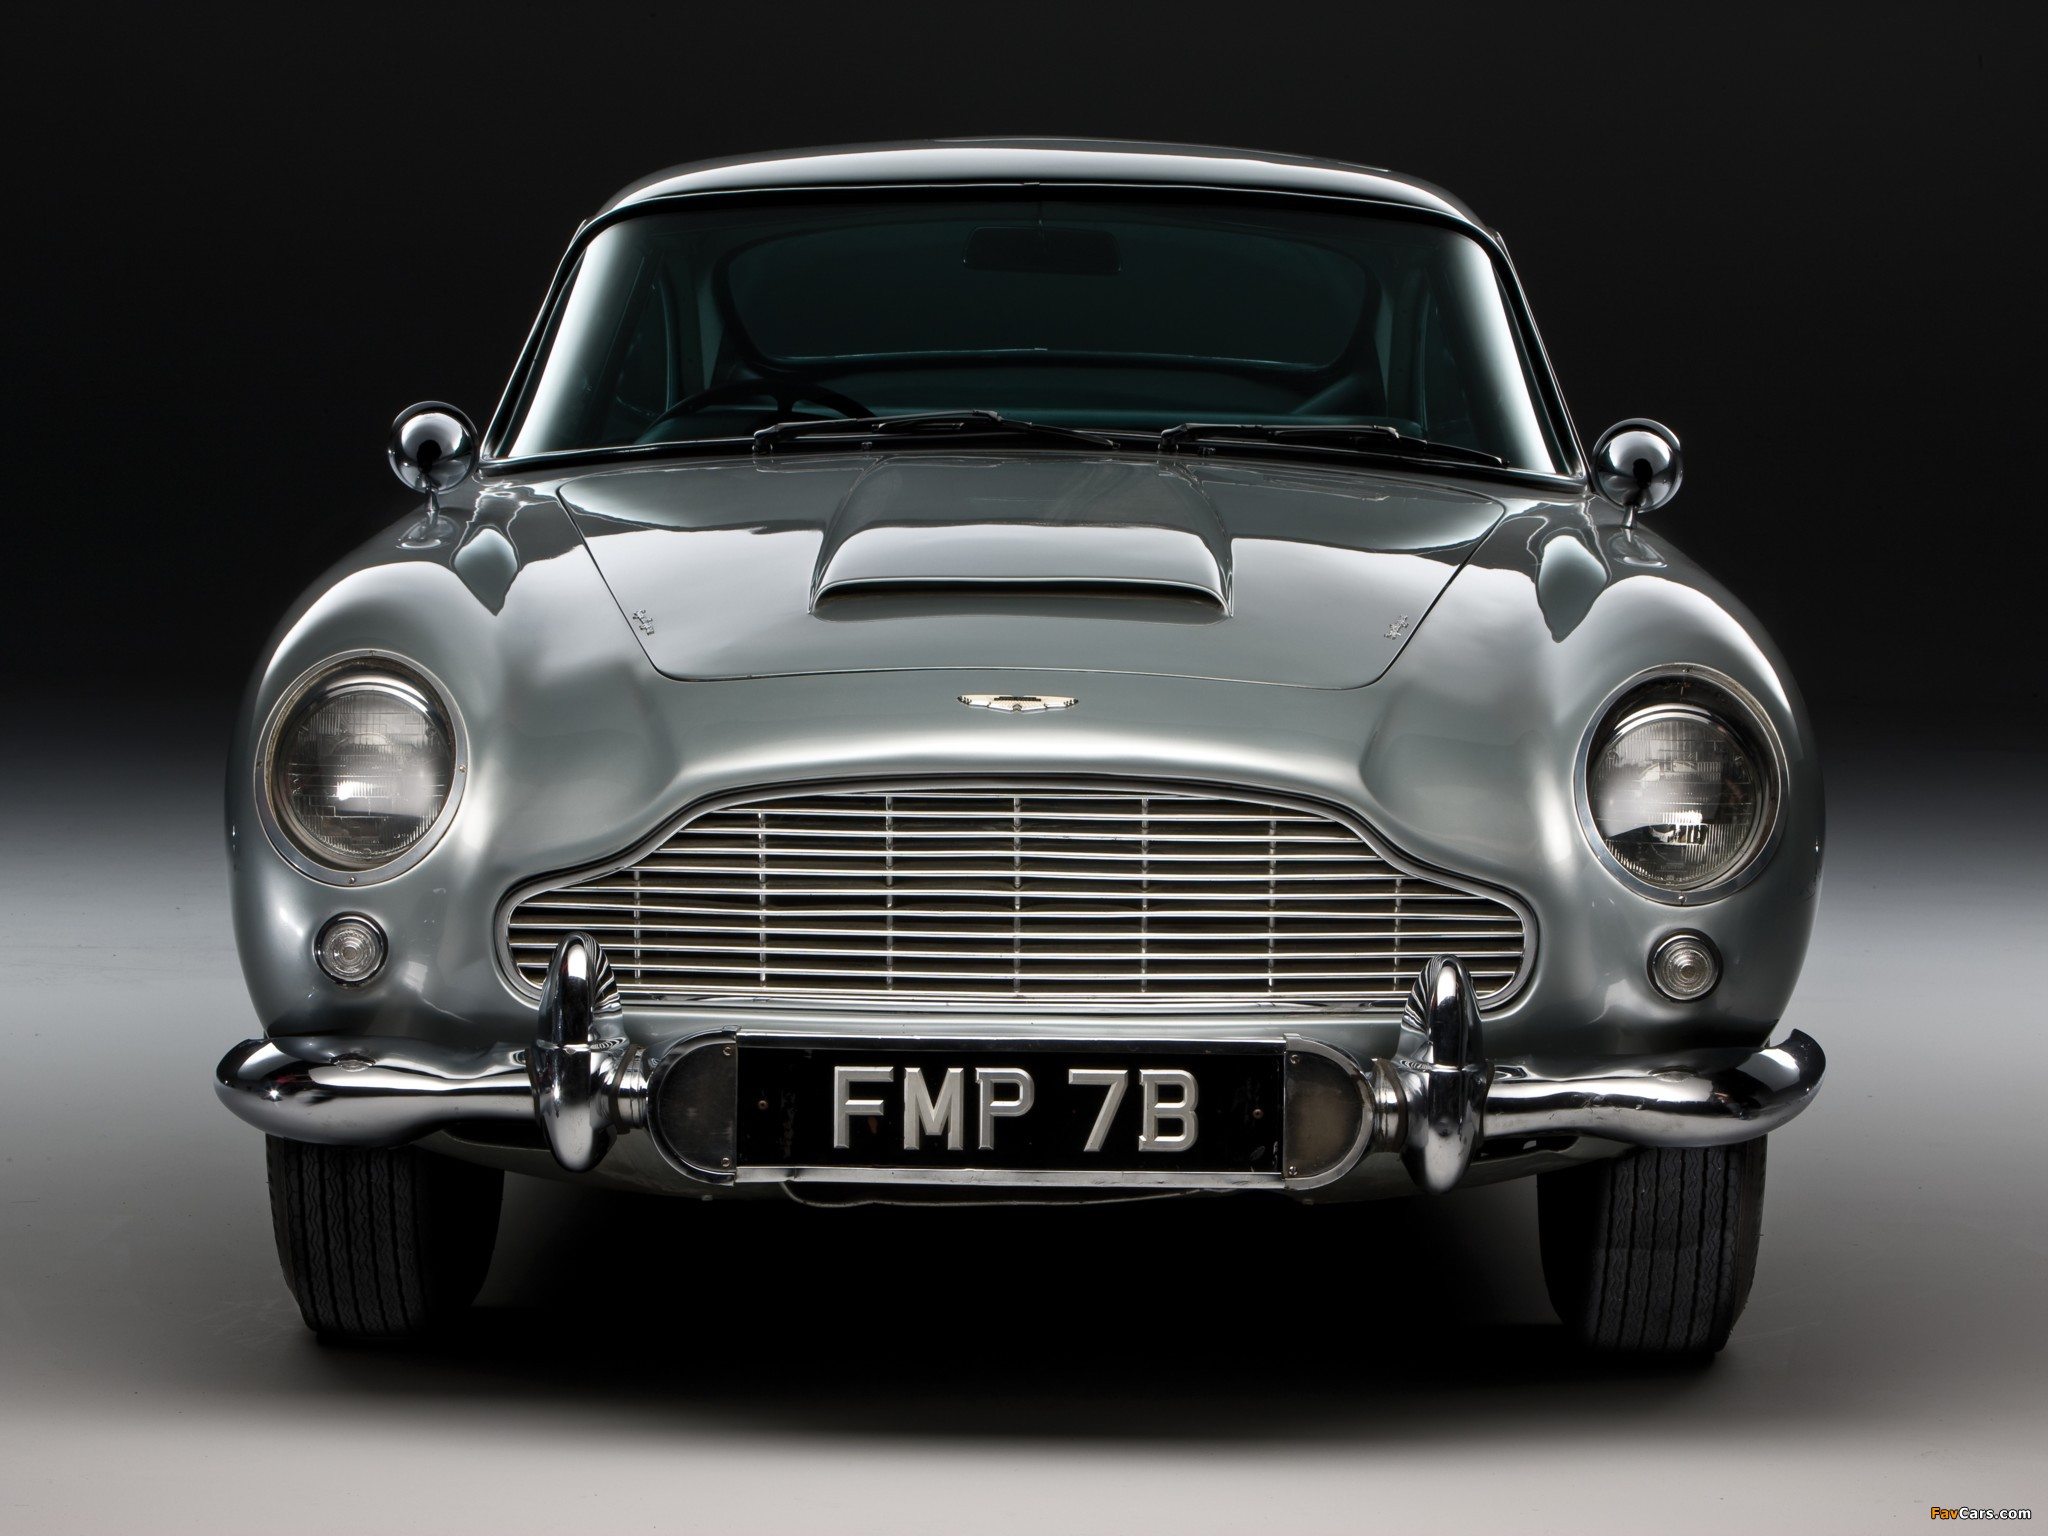 wallpapers of aston martin db5 james bond edition 1964. Cars Review. Best American Auto & Cars Review